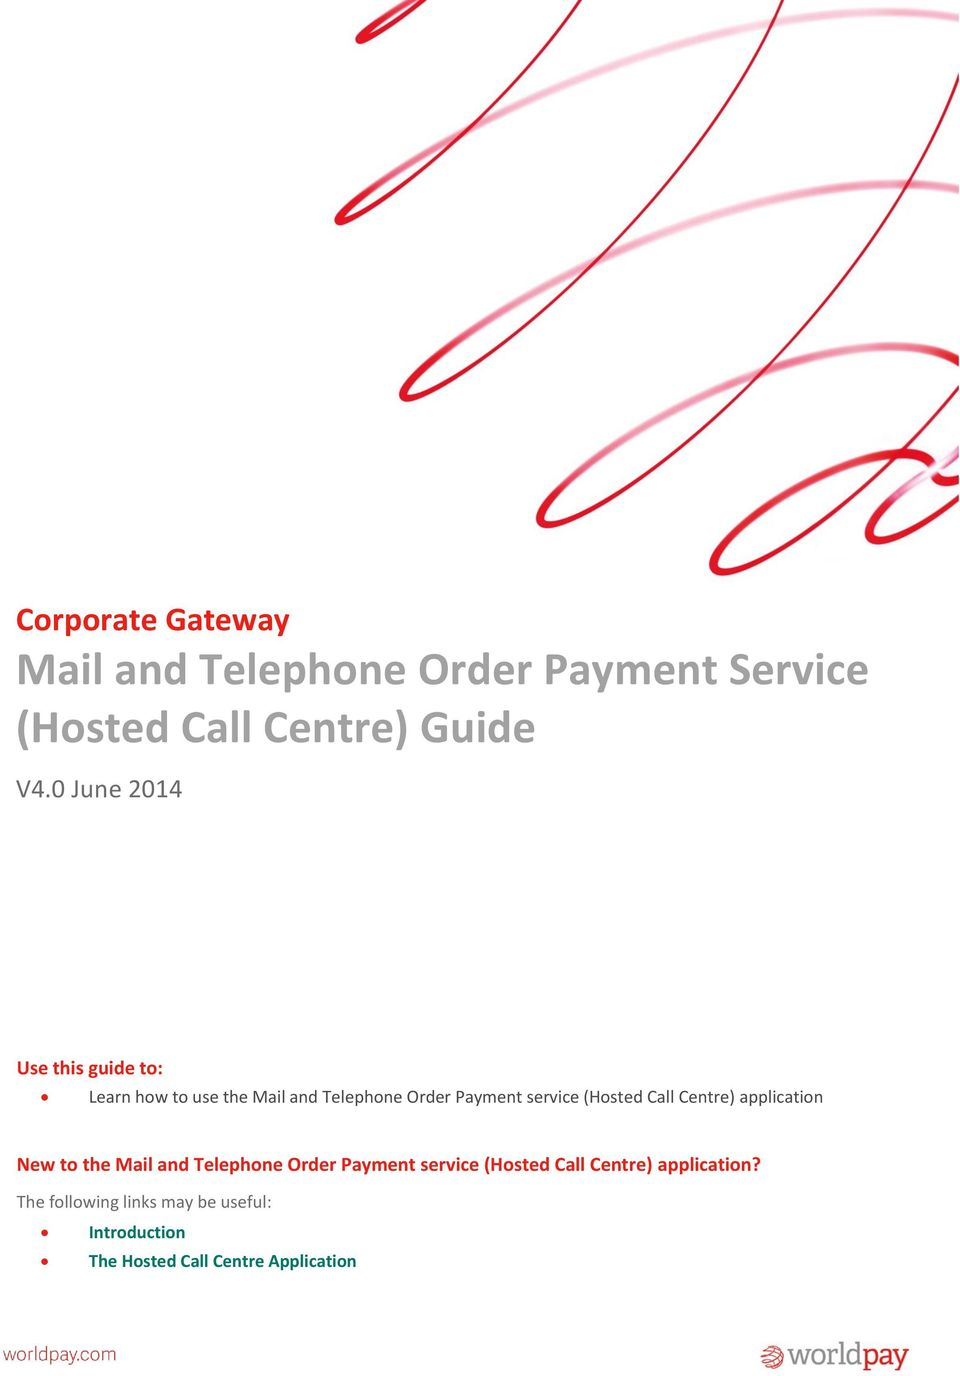 (Hosted Call Centre) application New to the Mail and Telephone Order Payment service (Hosted